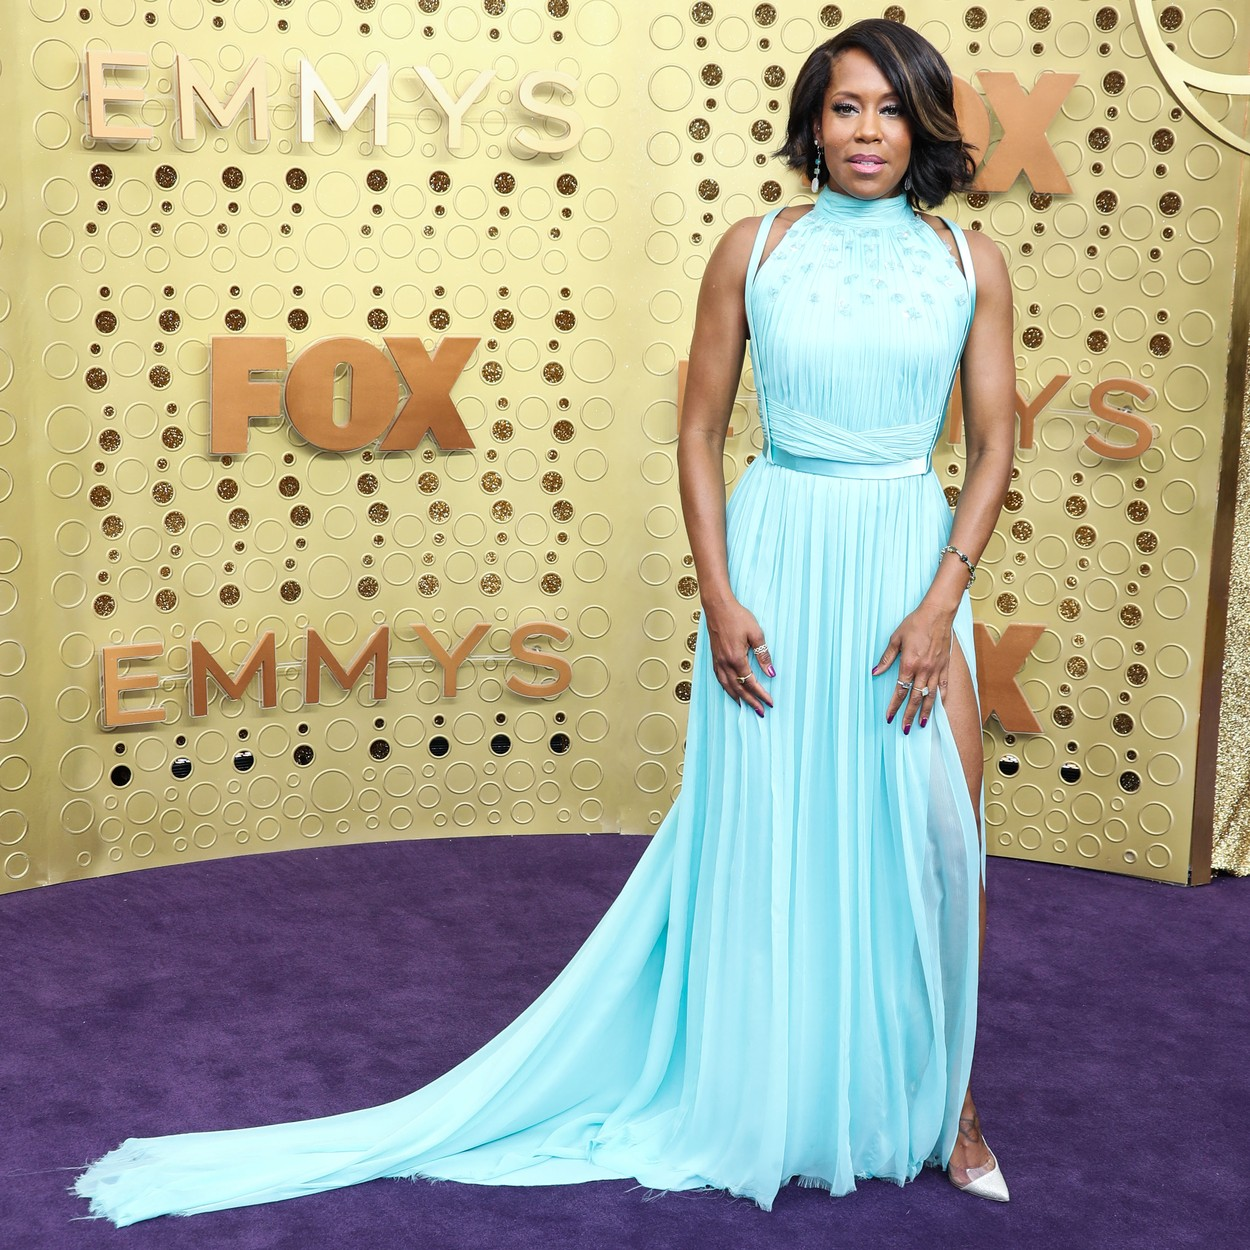 LOS ANGELES, CALIFORNIA, USA - SEPTEMBER 22: Regina King arrives at the 71st Annual Primetime Emmy Awards held at Microsoft Theater L.A. Live on September 22, 2019 in Los Angeles, California, United States.,Image: 472709779, License: Rights-managed, Restrictions: *** Australia Out ***, Model Release: no, Credit line: Image Press Agency / ddp USA / Profimedia